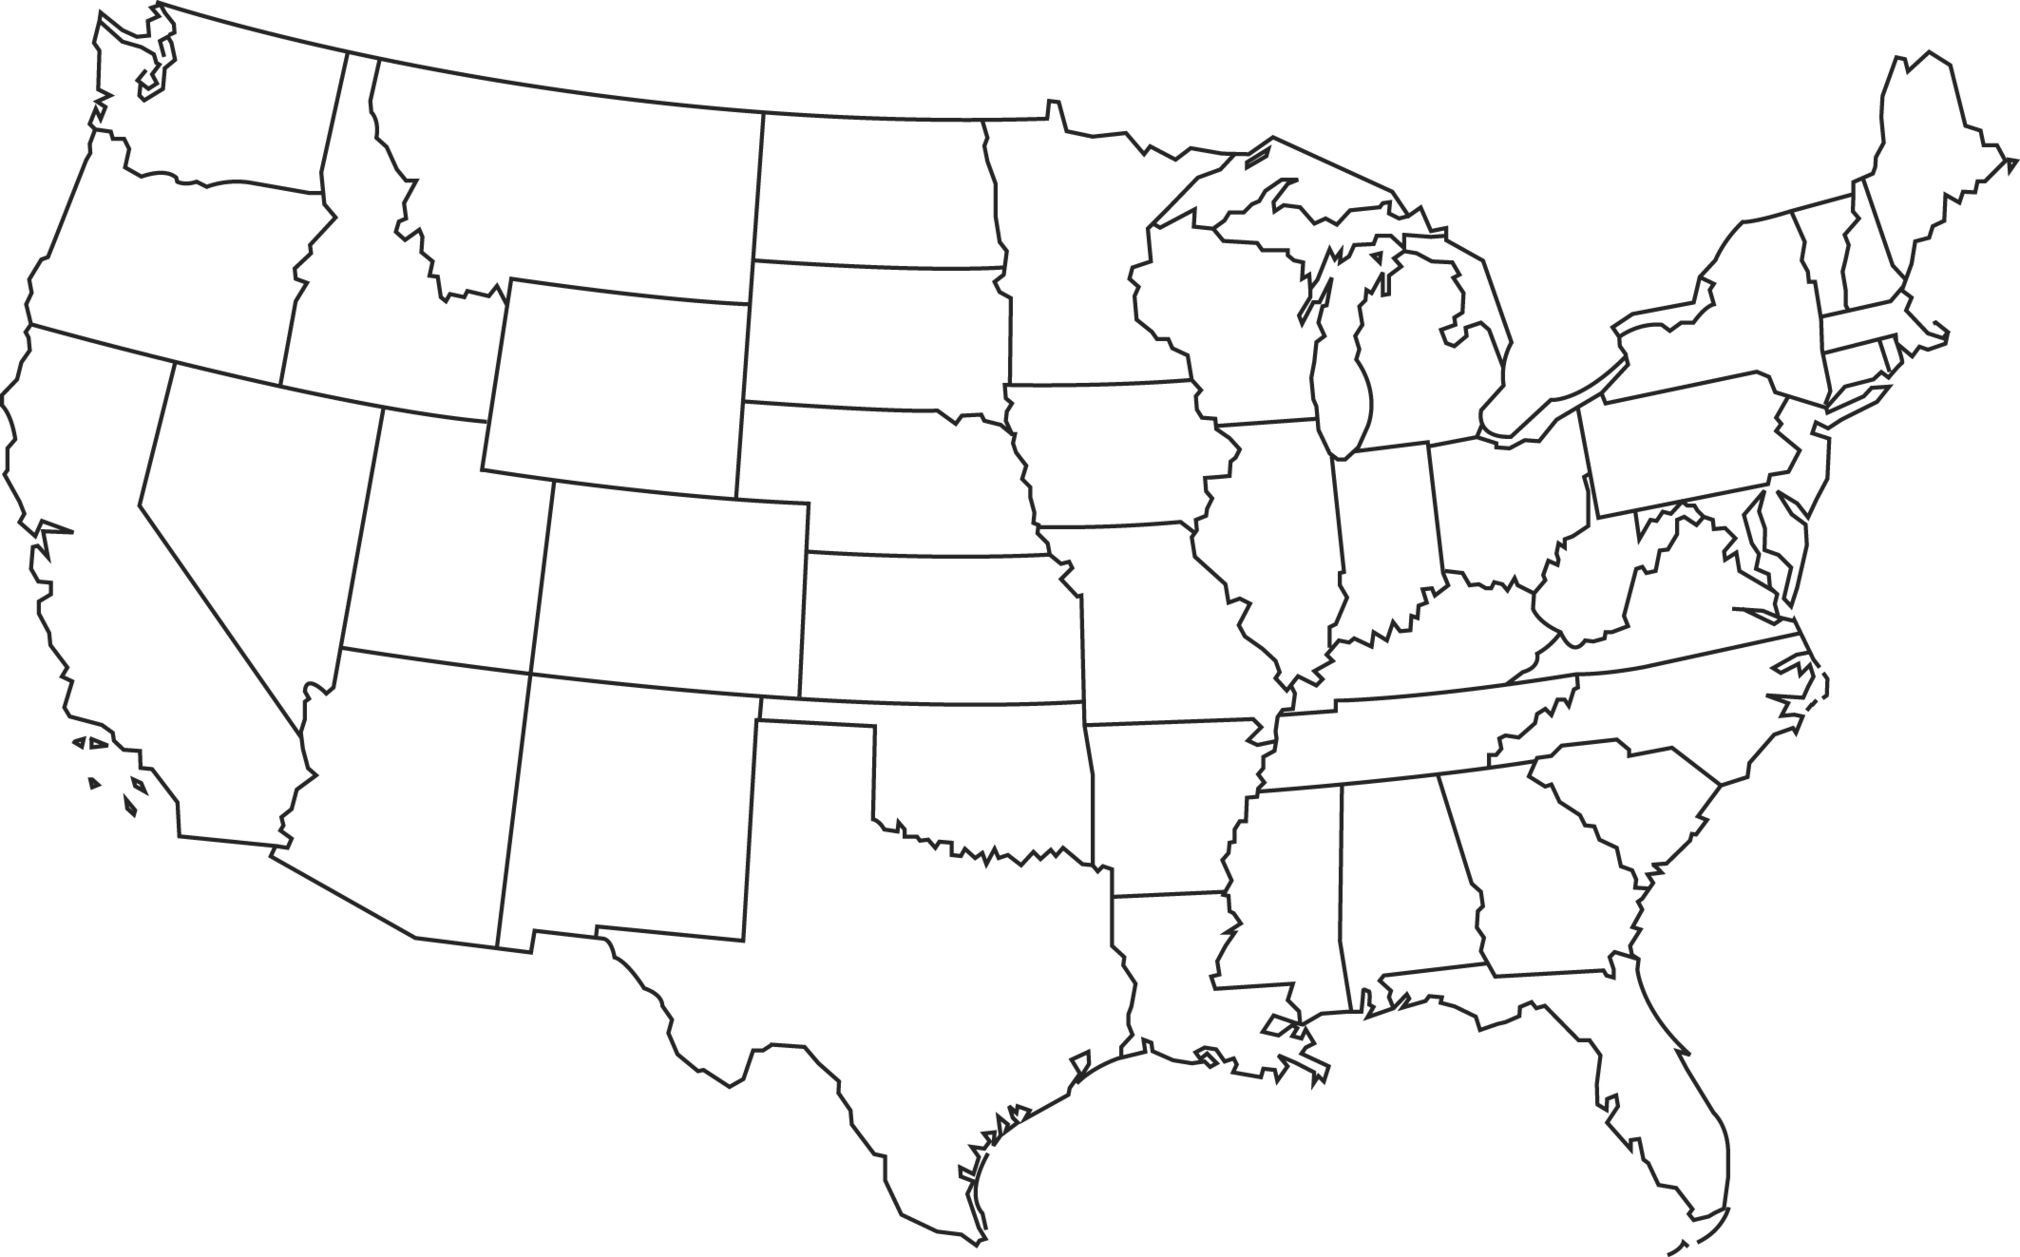 2020x1257 Vector Graphics Us Map Blank New Vector Graphics Us Map Blank 9 S